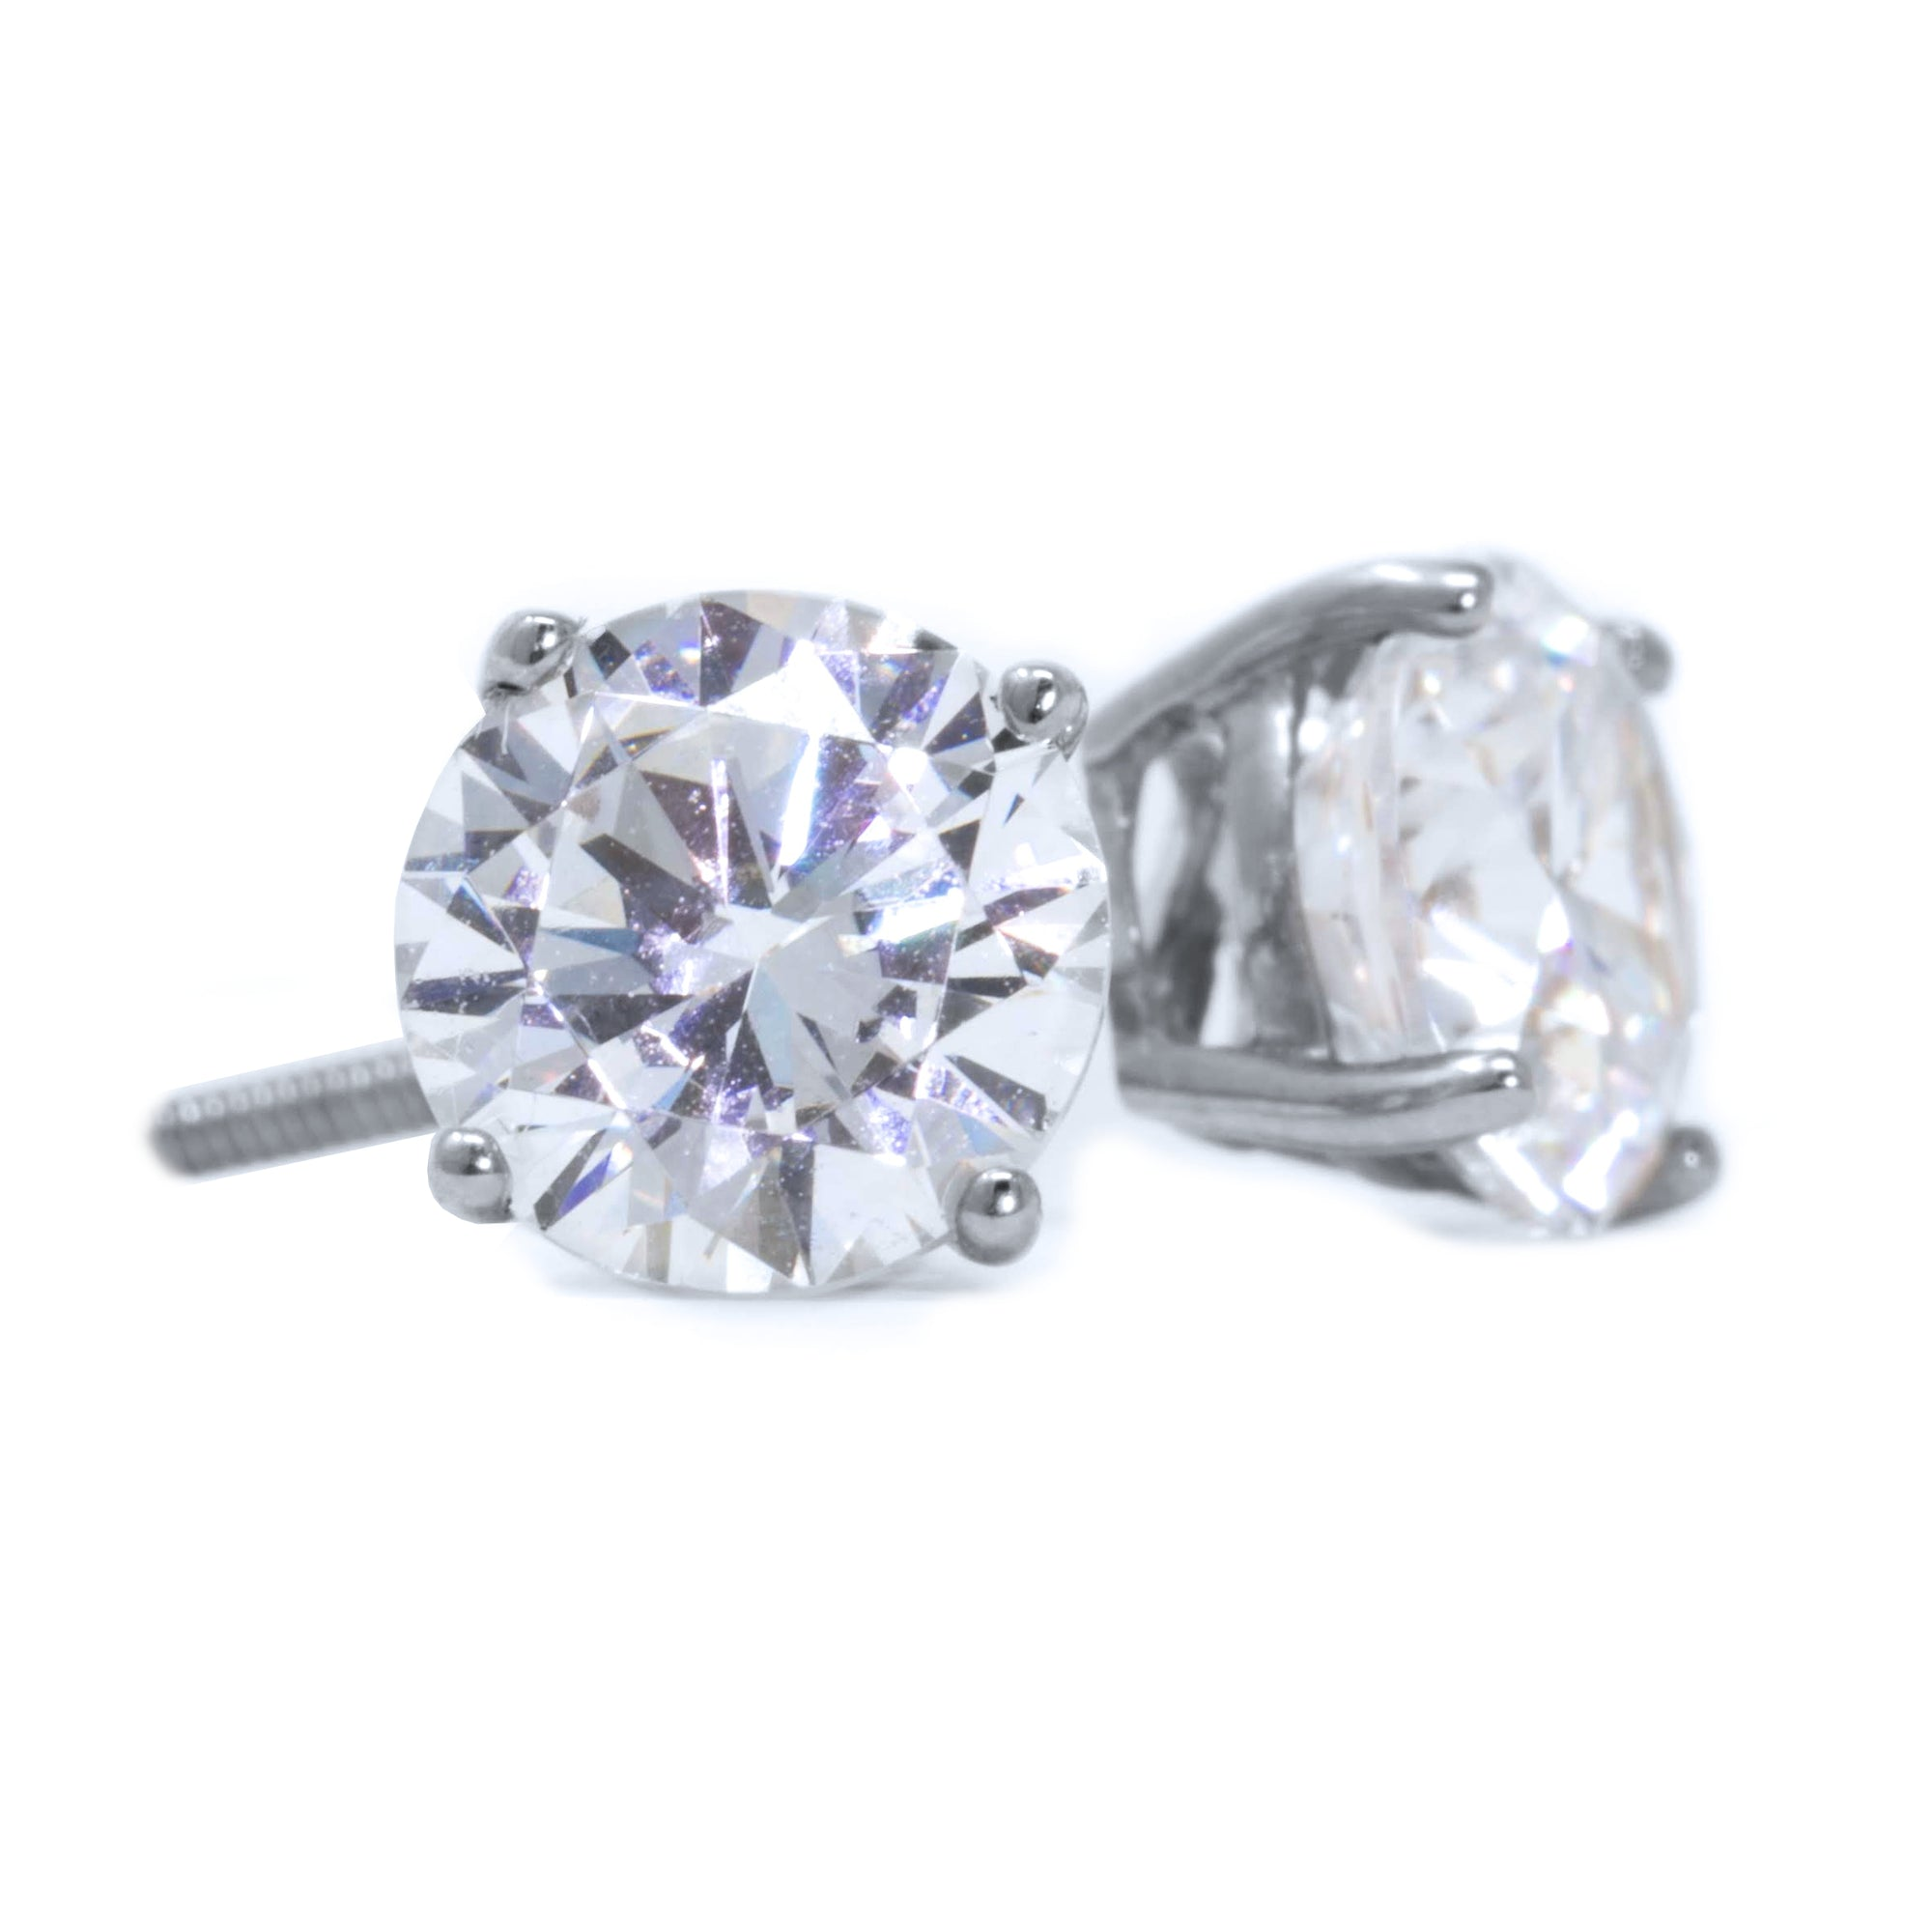 a505d5988 2 Ct. Round Earrings Solid 14K 18k White Gold Basket Screw Back - Glamour  Life Diamonds